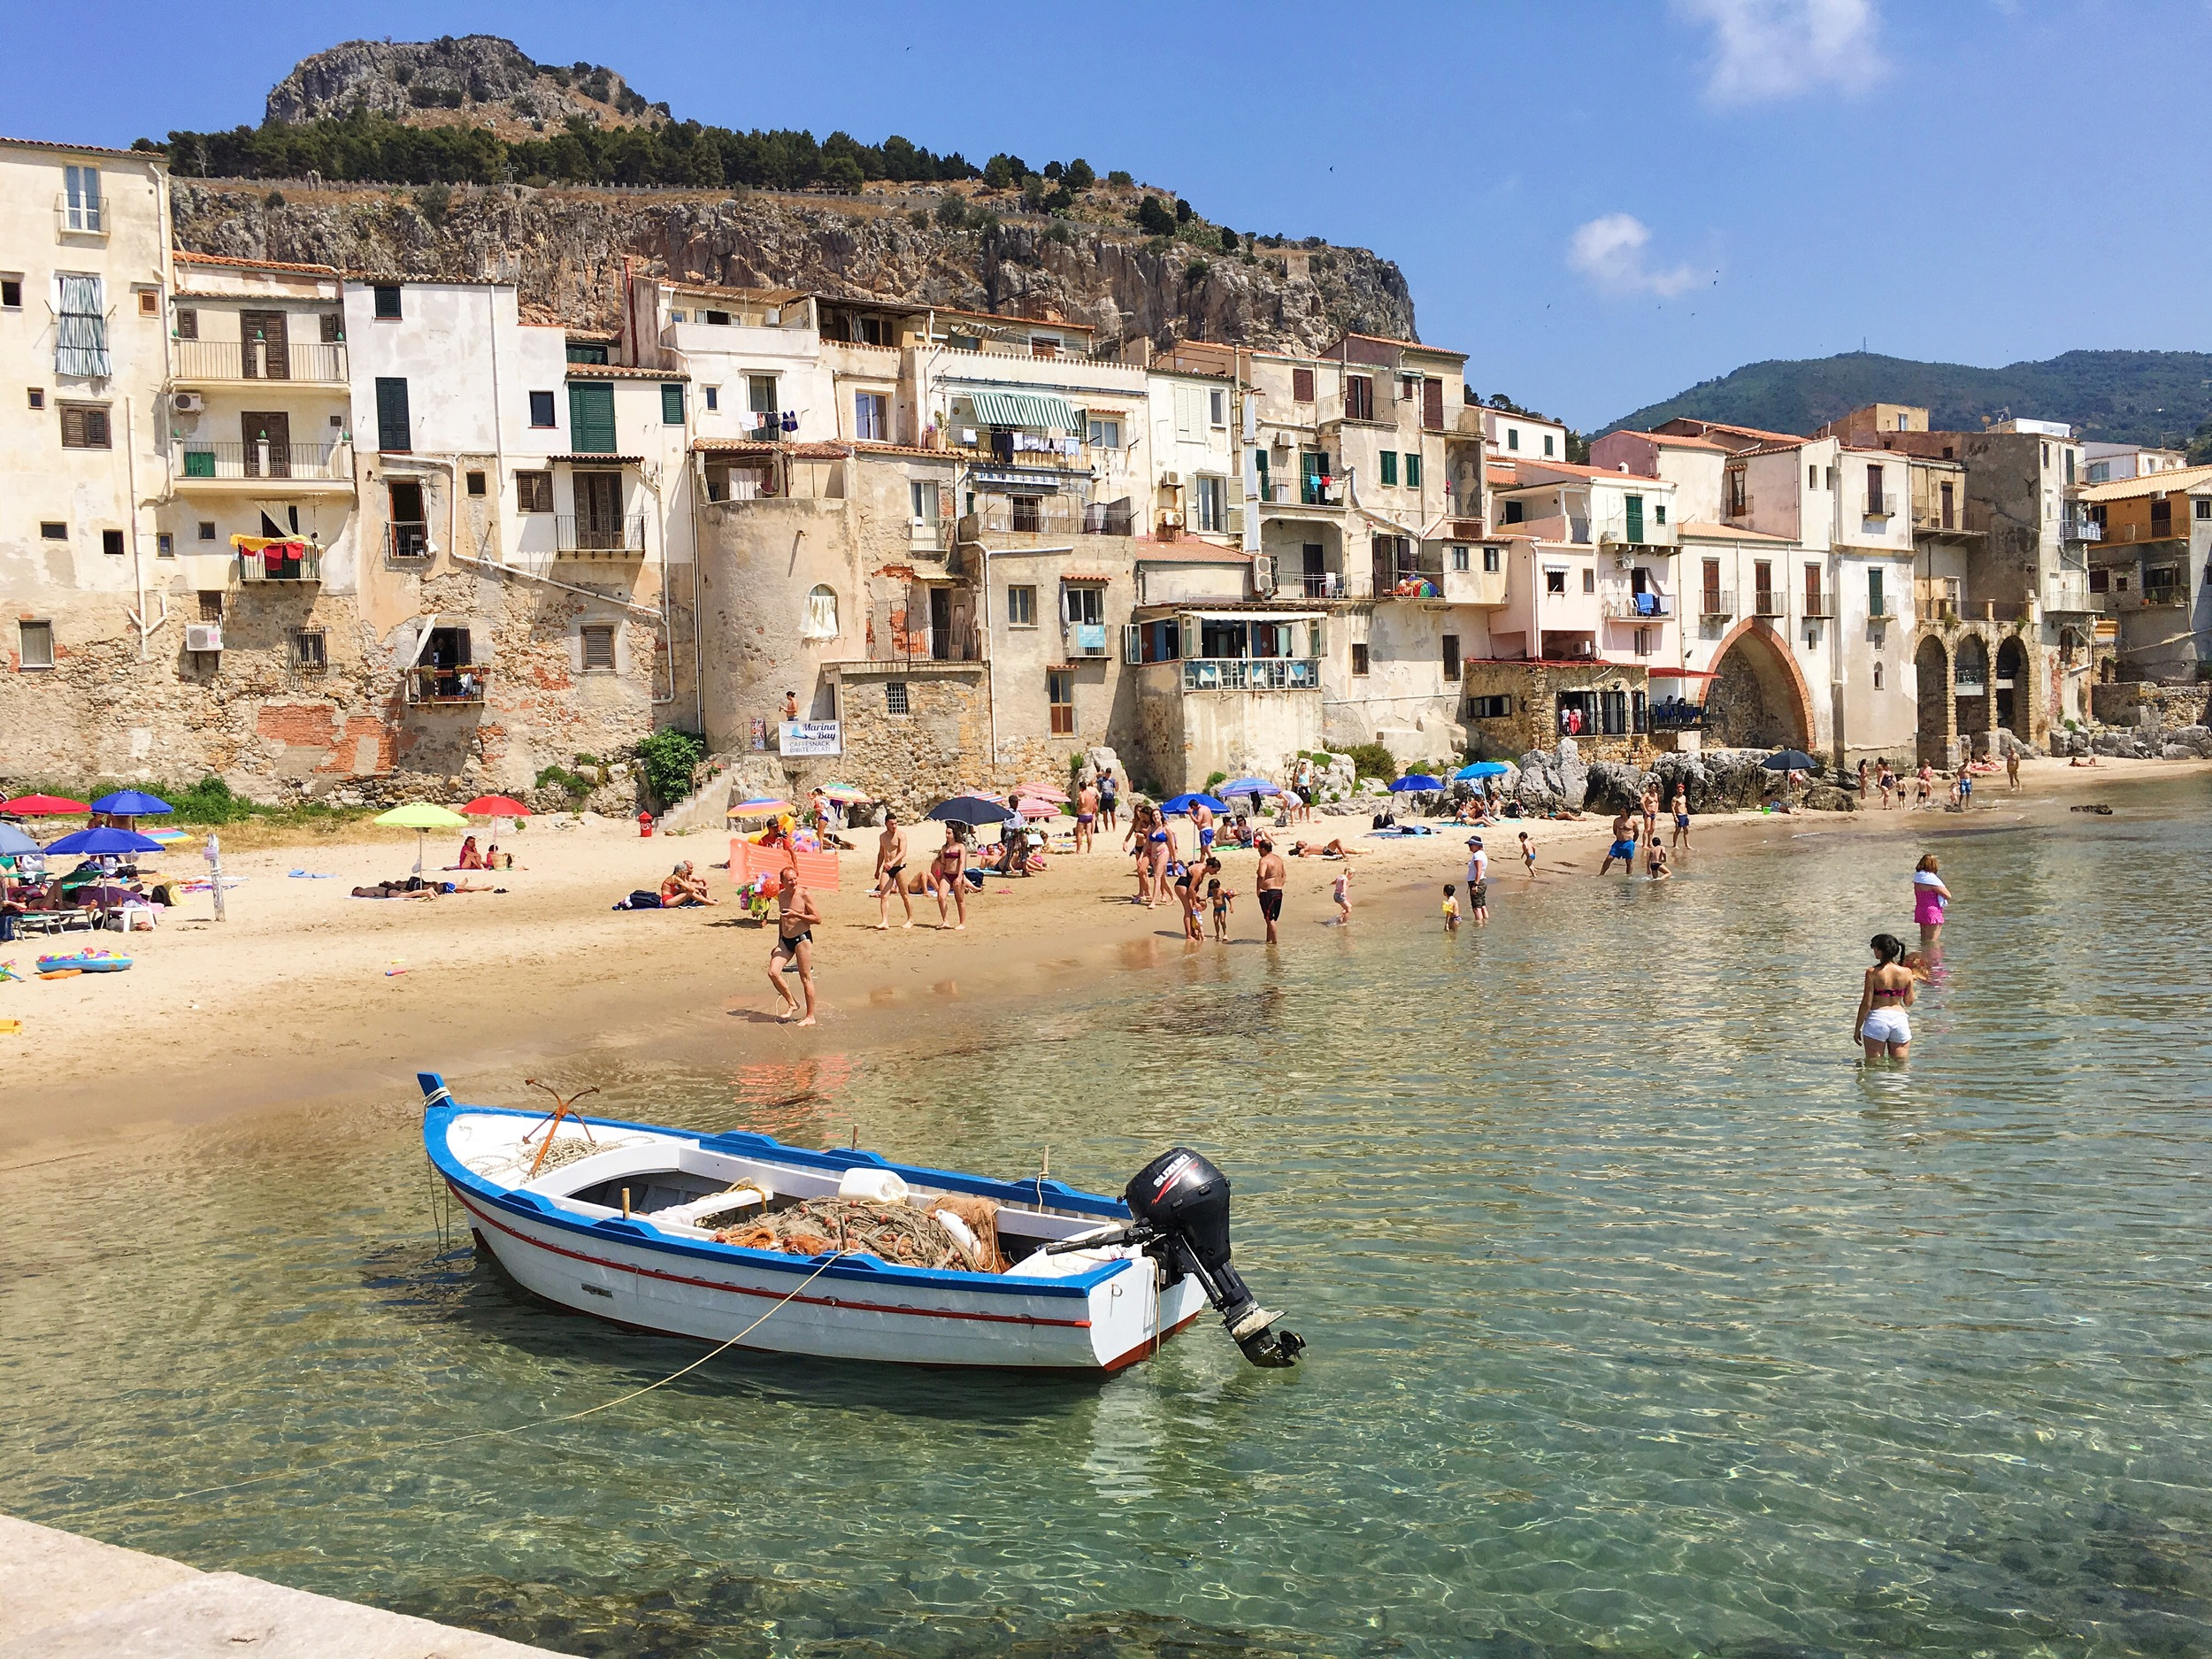 these boats are everywhere in Sicily and very photogenic